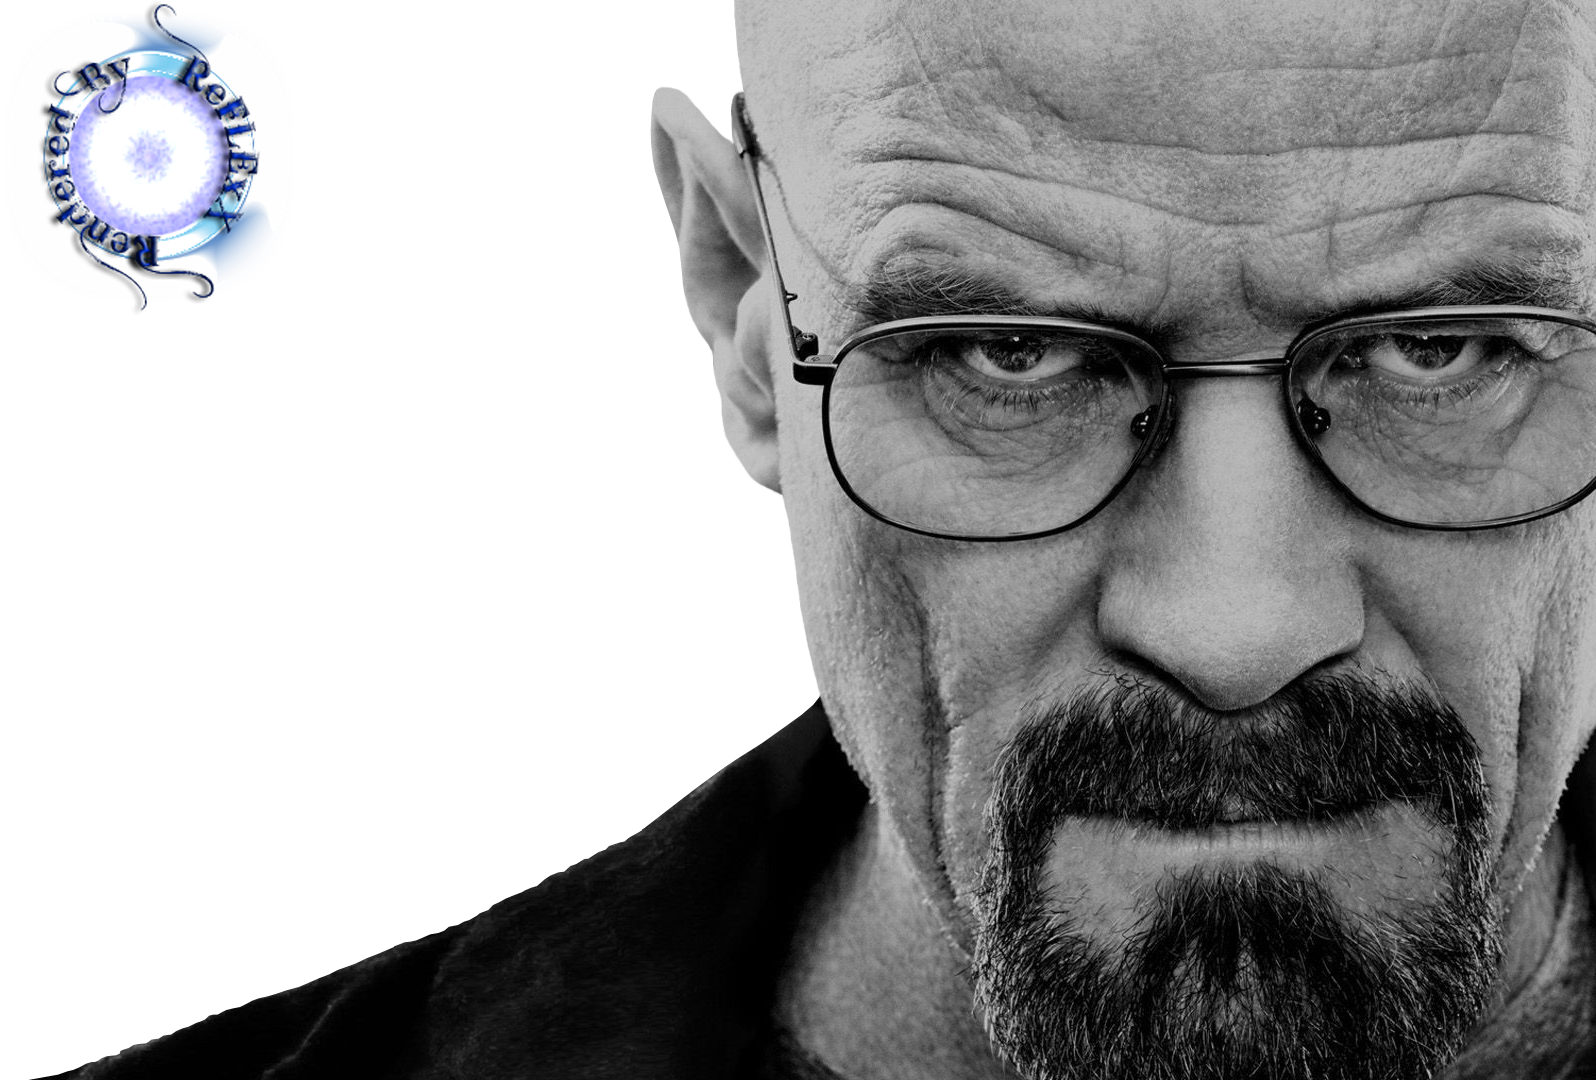 Render Walter White Breaking Bad Noir Blanc Black White Lunettes Chauve Movies And T V Series Png Cutout Image Upload By Re Breaking Bad Pinturas Dibujos